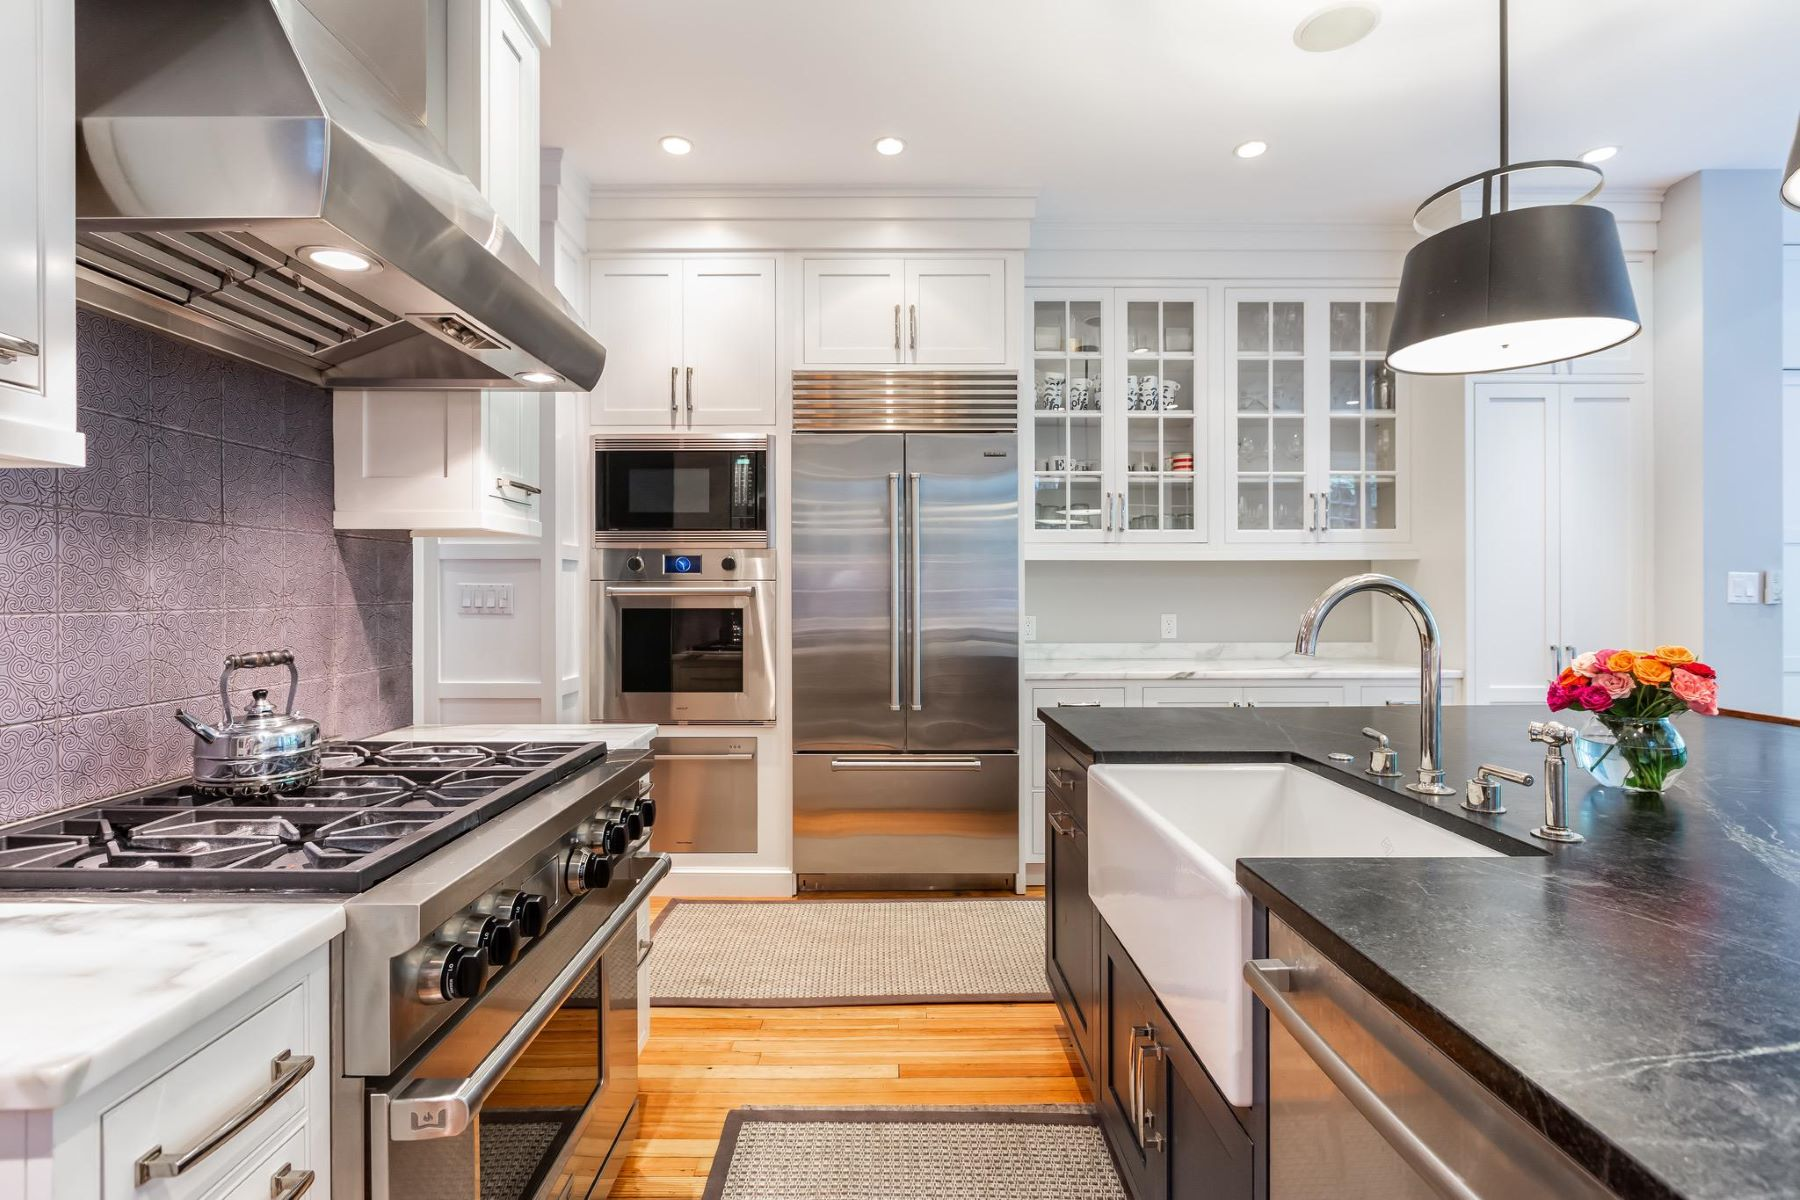 Additional photo for property listing at 1626 29th St NW 1626 29th St NW Washington, District Of Columbia 20007 United States